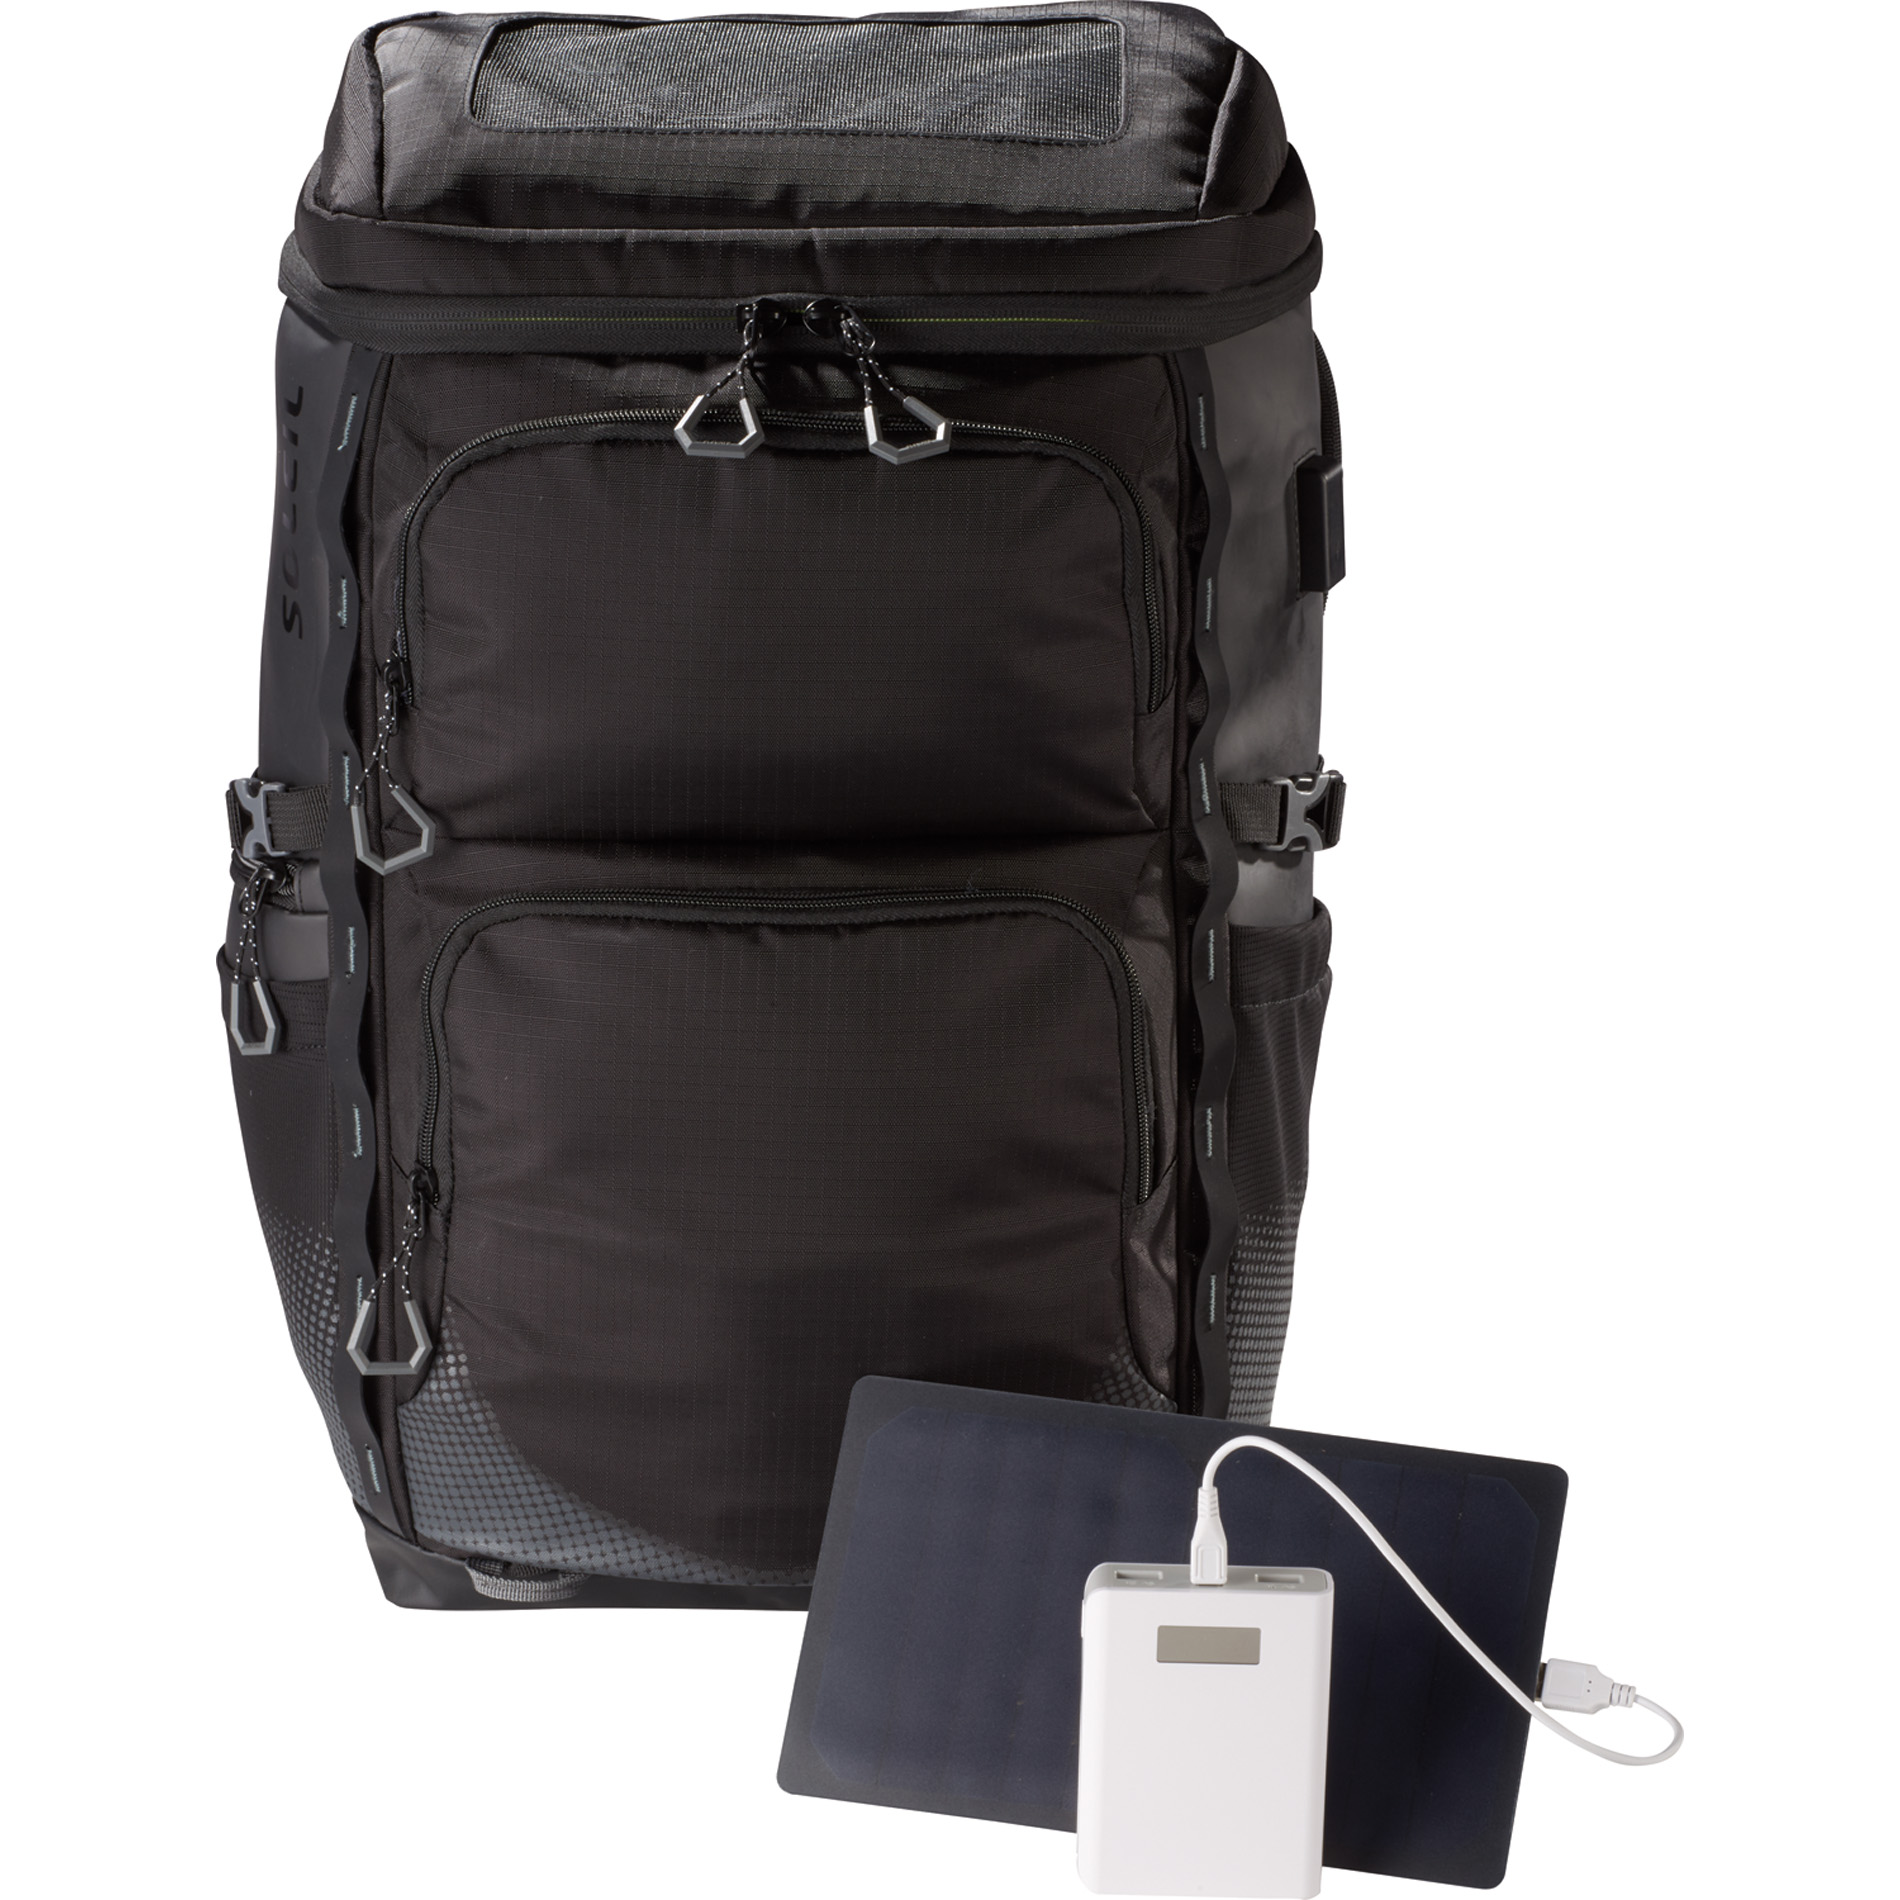 Elevate 1975-23 - Soleil Backpack w/ 8000 mAh Powerbank